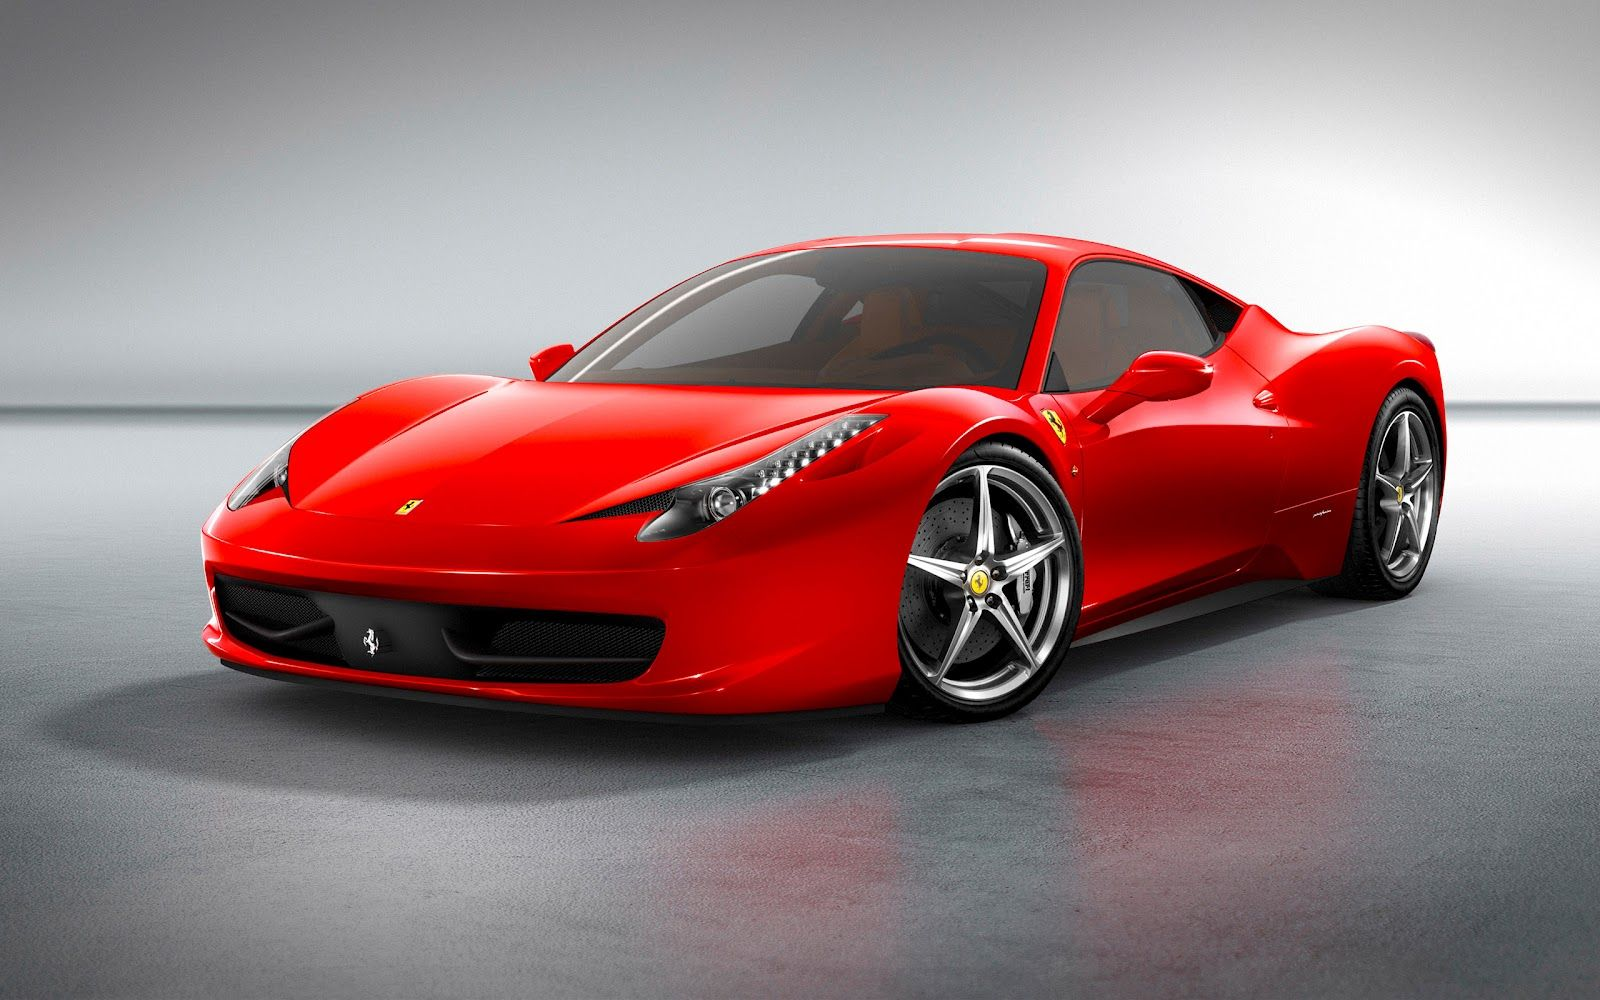 Beautiful Ferrari Cars In The World Ferrari 458 Ferrari Italia